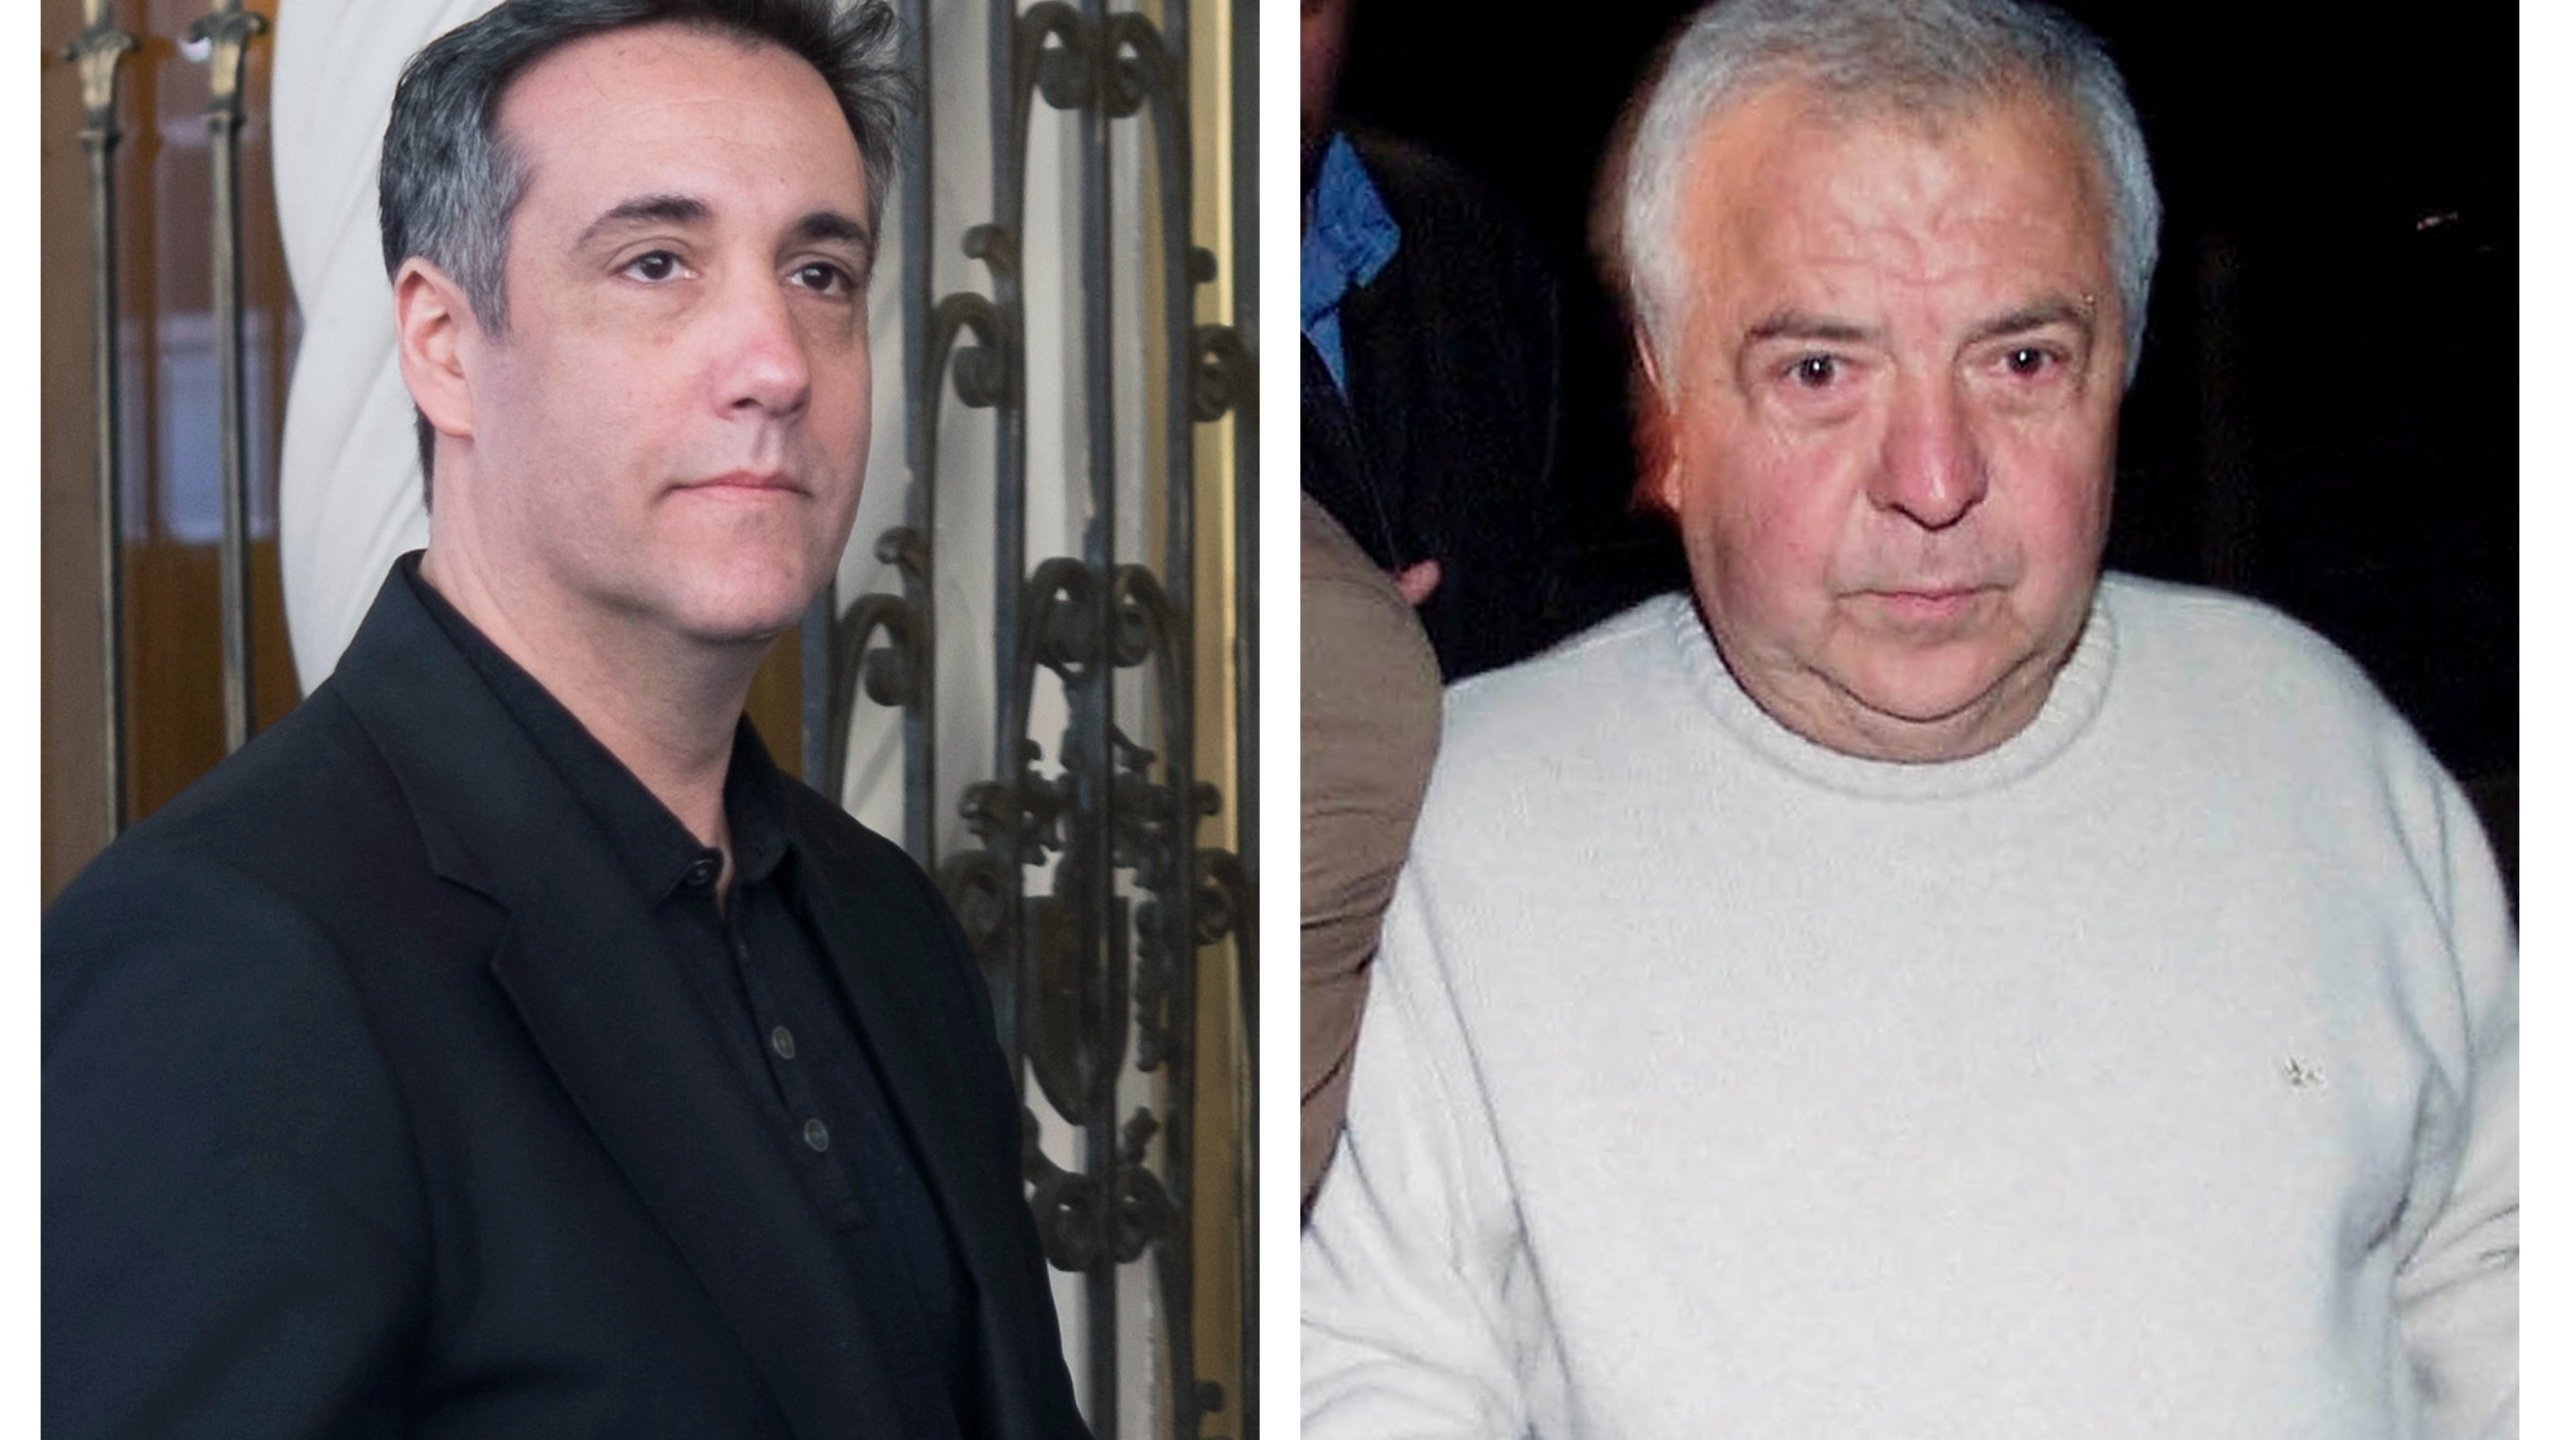 Michael Cohen, left, President Donald Trump's former personal attorney, and drug kingpin Gilberto Rodriguez Orejuela. Amid the COVID-19 coronavirus threat, they are among the prisoners making pleas for compassionate release or home detention. (AP Photo/Jonathan Carroll, Javier Galeano)